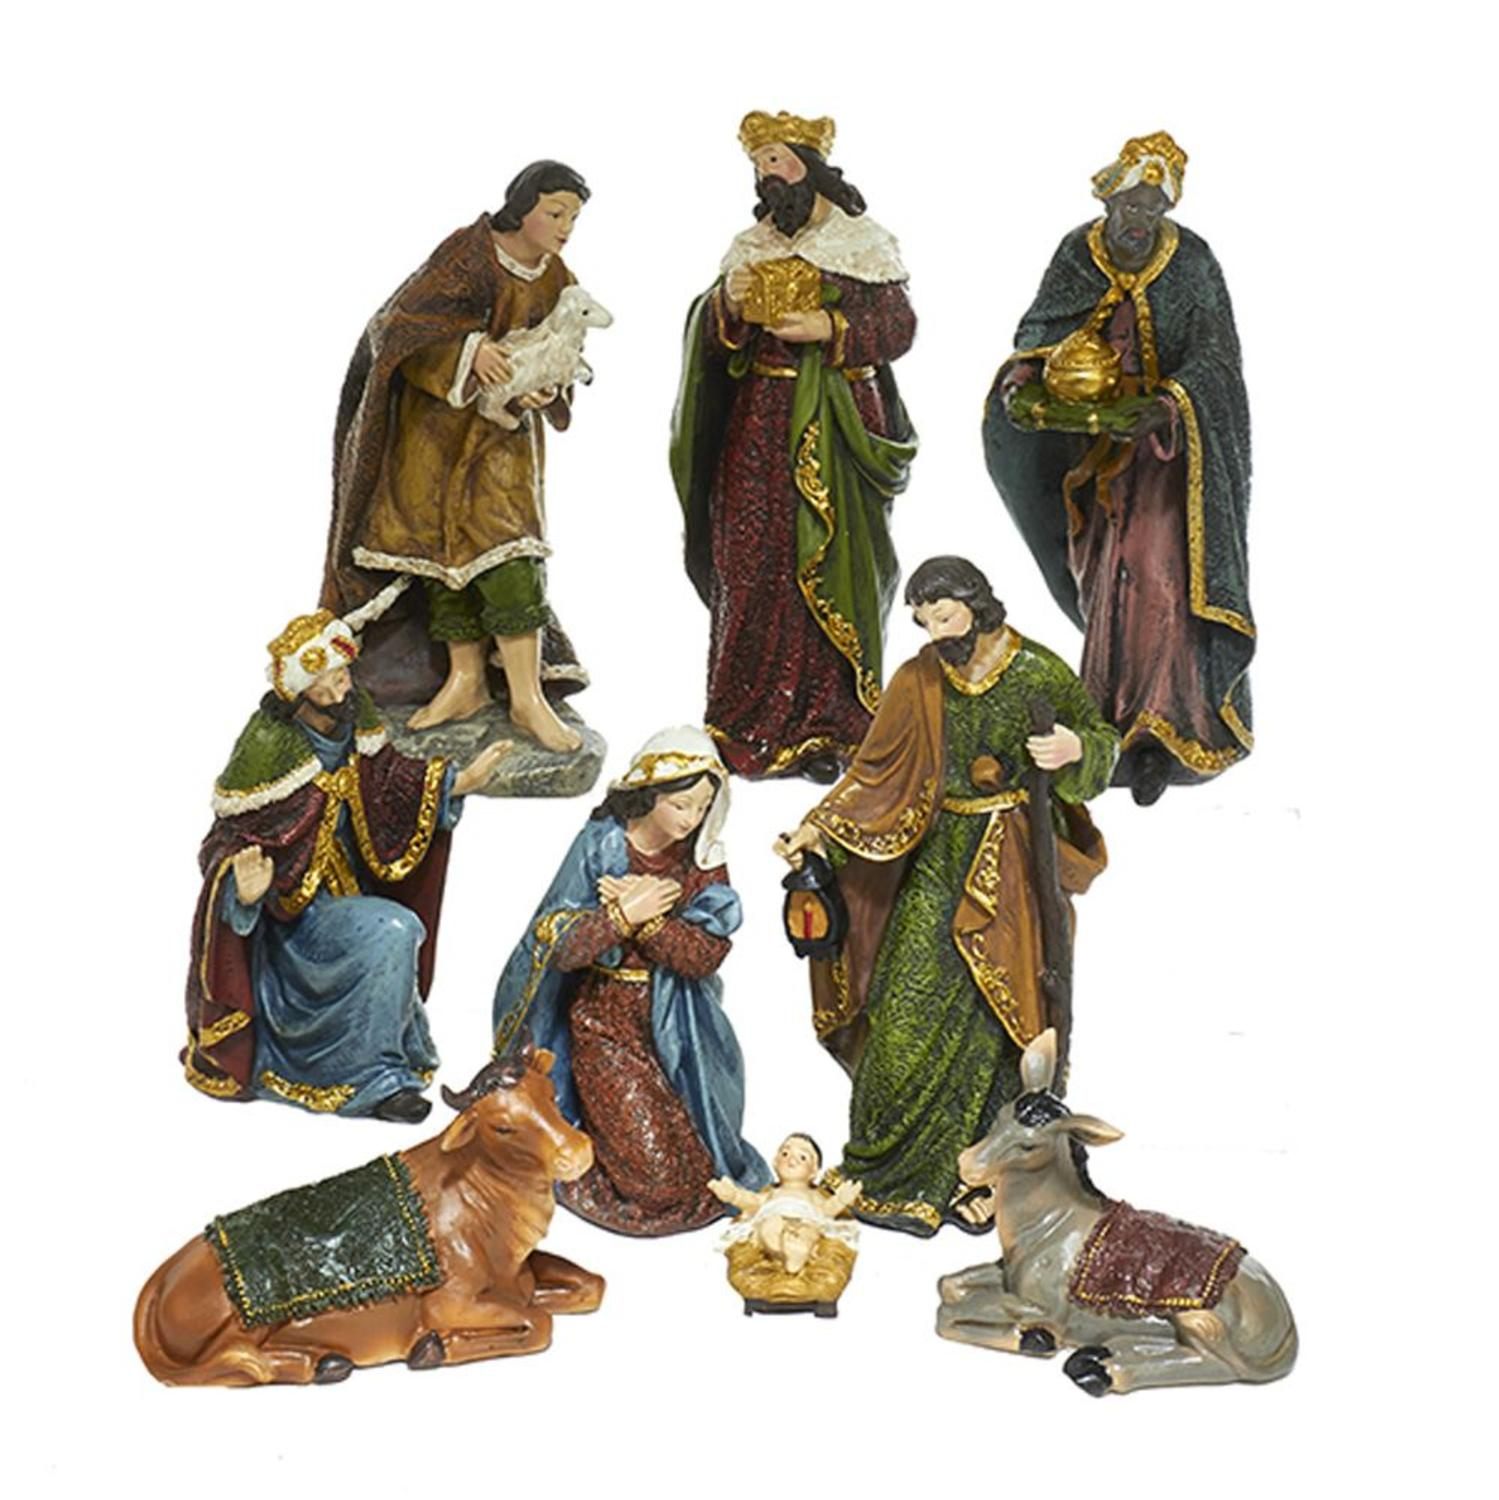 9 Pieces Subtle Colored Vintage Inspired Decorative Nativity Figurine Set 8""